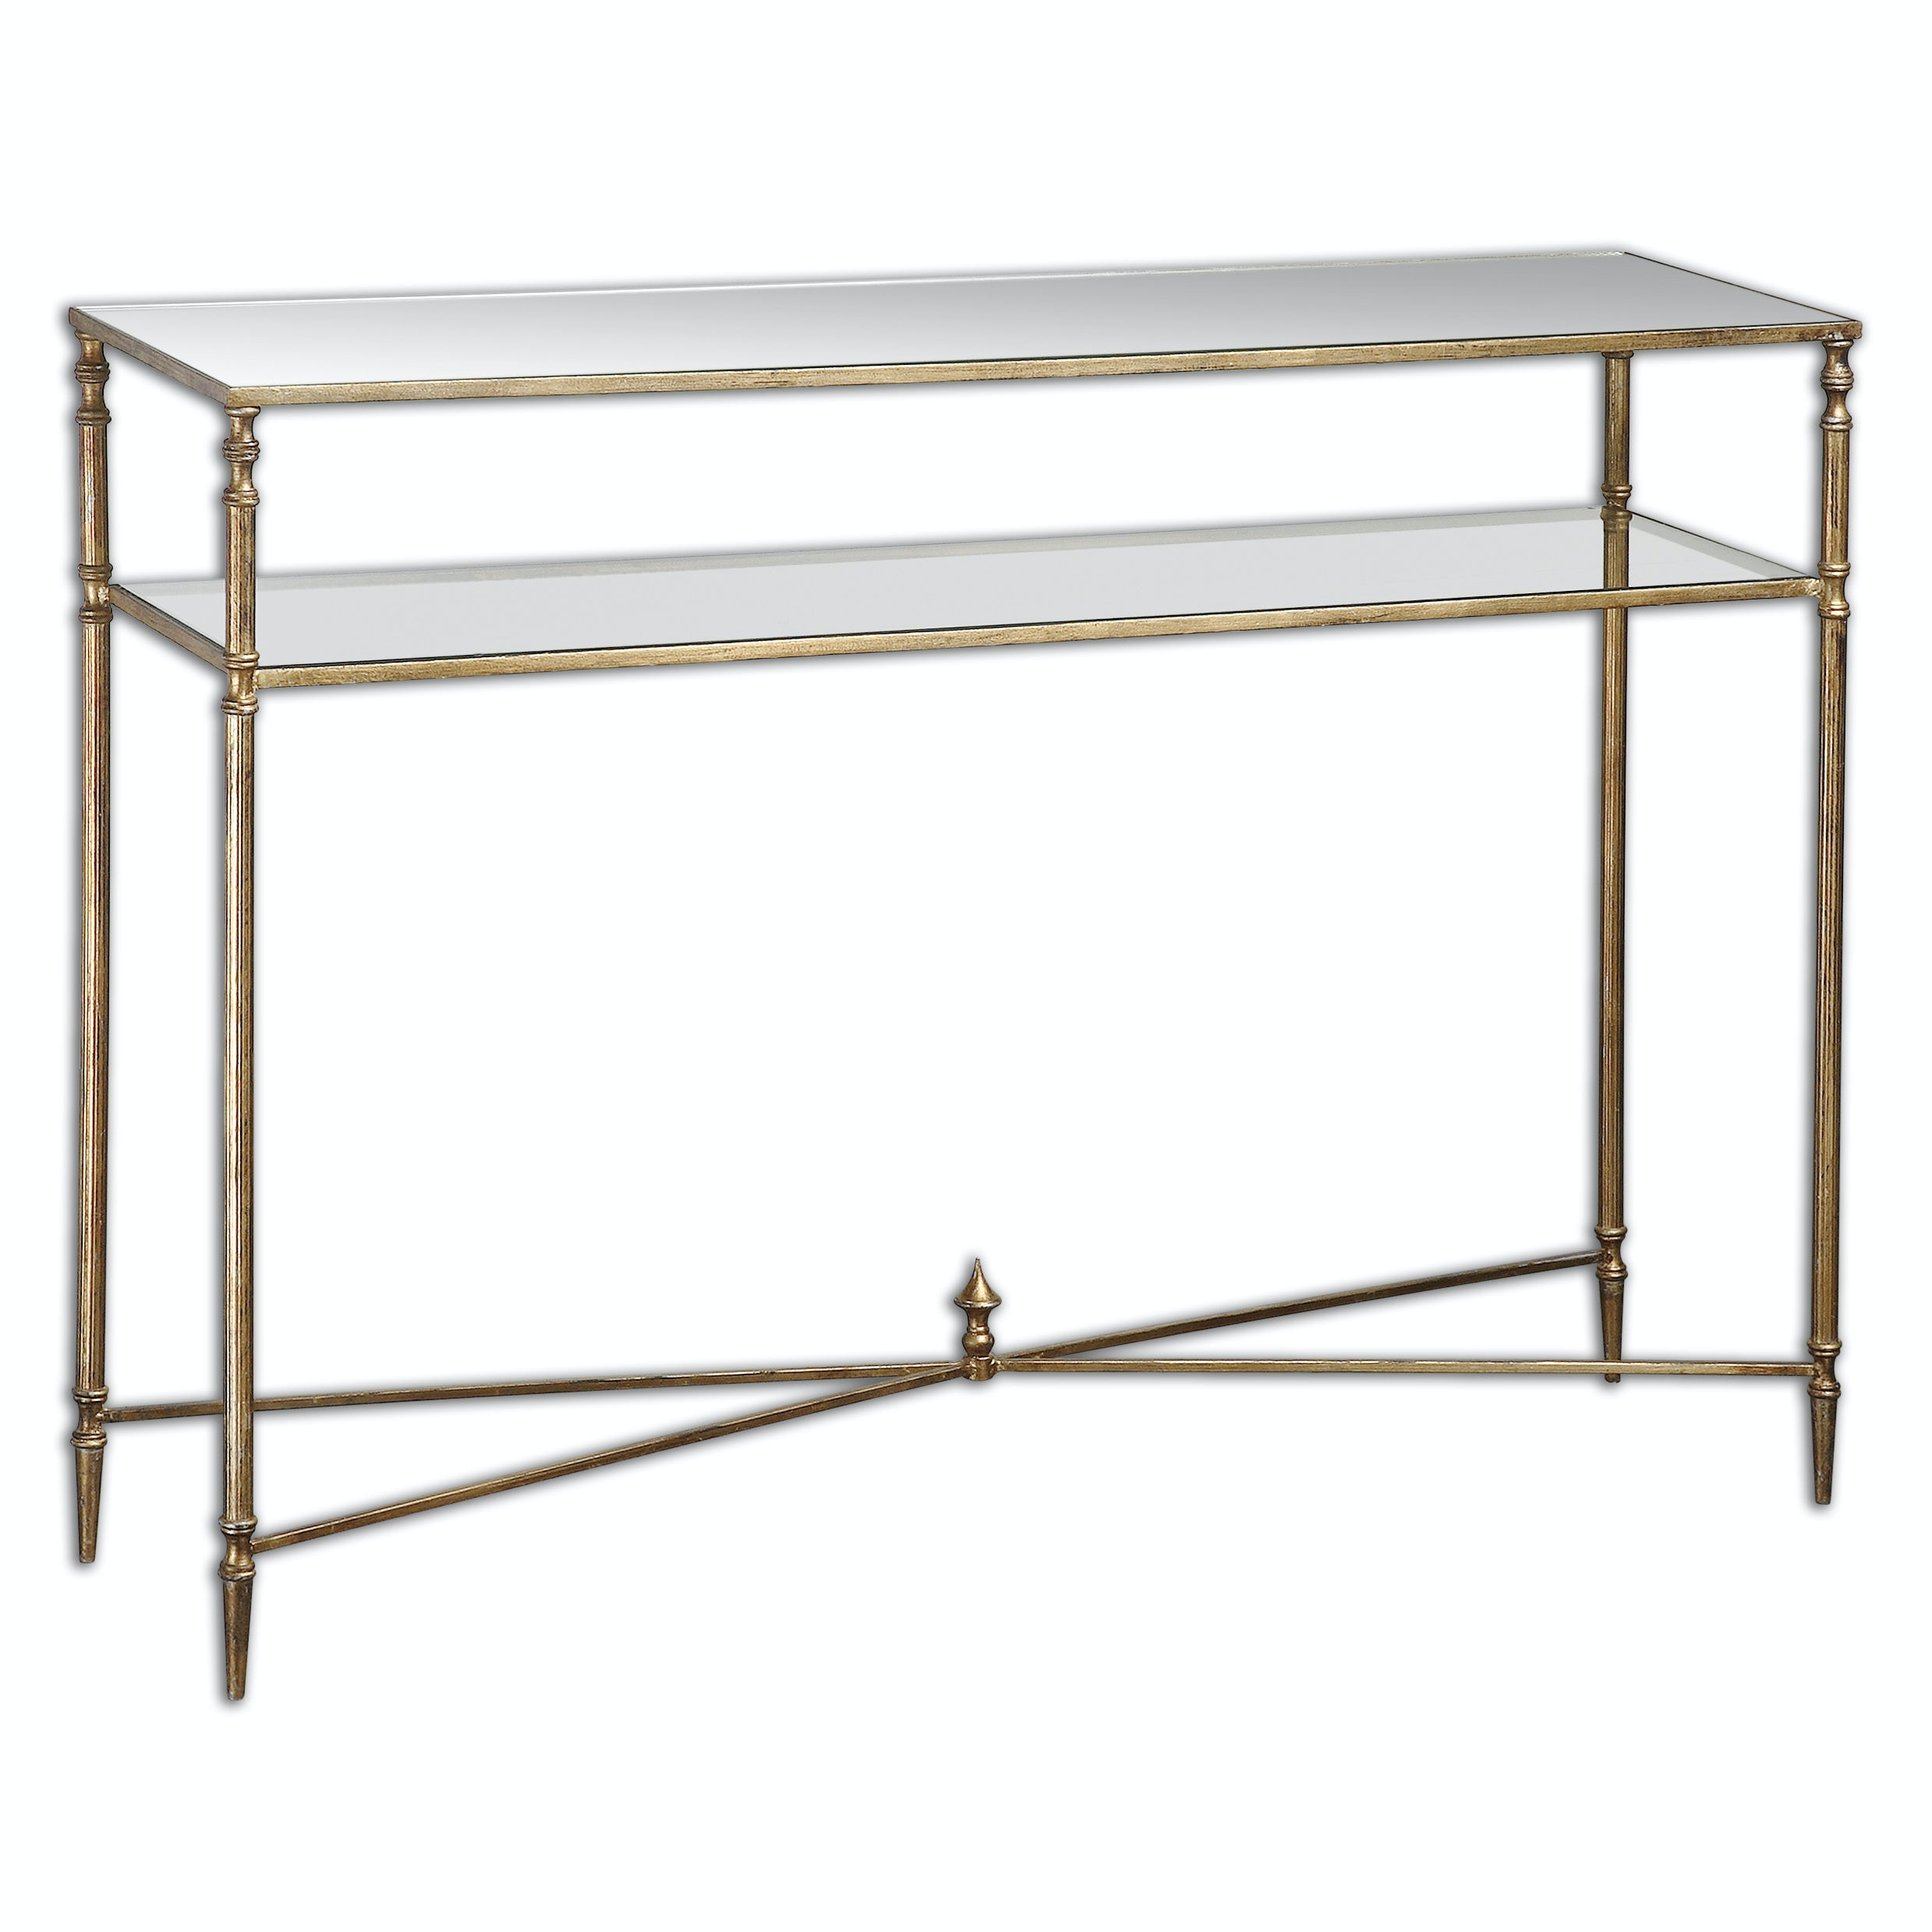 Uttermost Henzler Mirrored Glass Console Table UT24278 From Walter E.  Smithe Furniture + Design